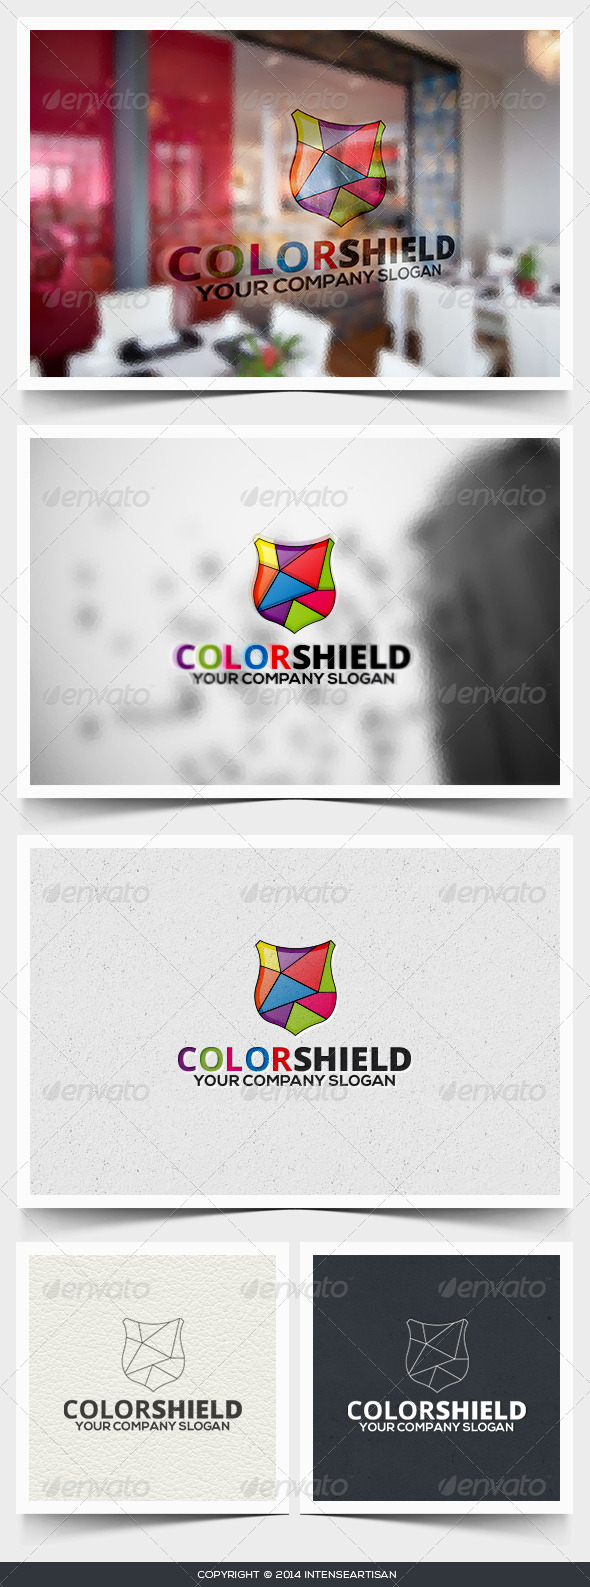 Color Shield Logo Template - Objects Logo Templates